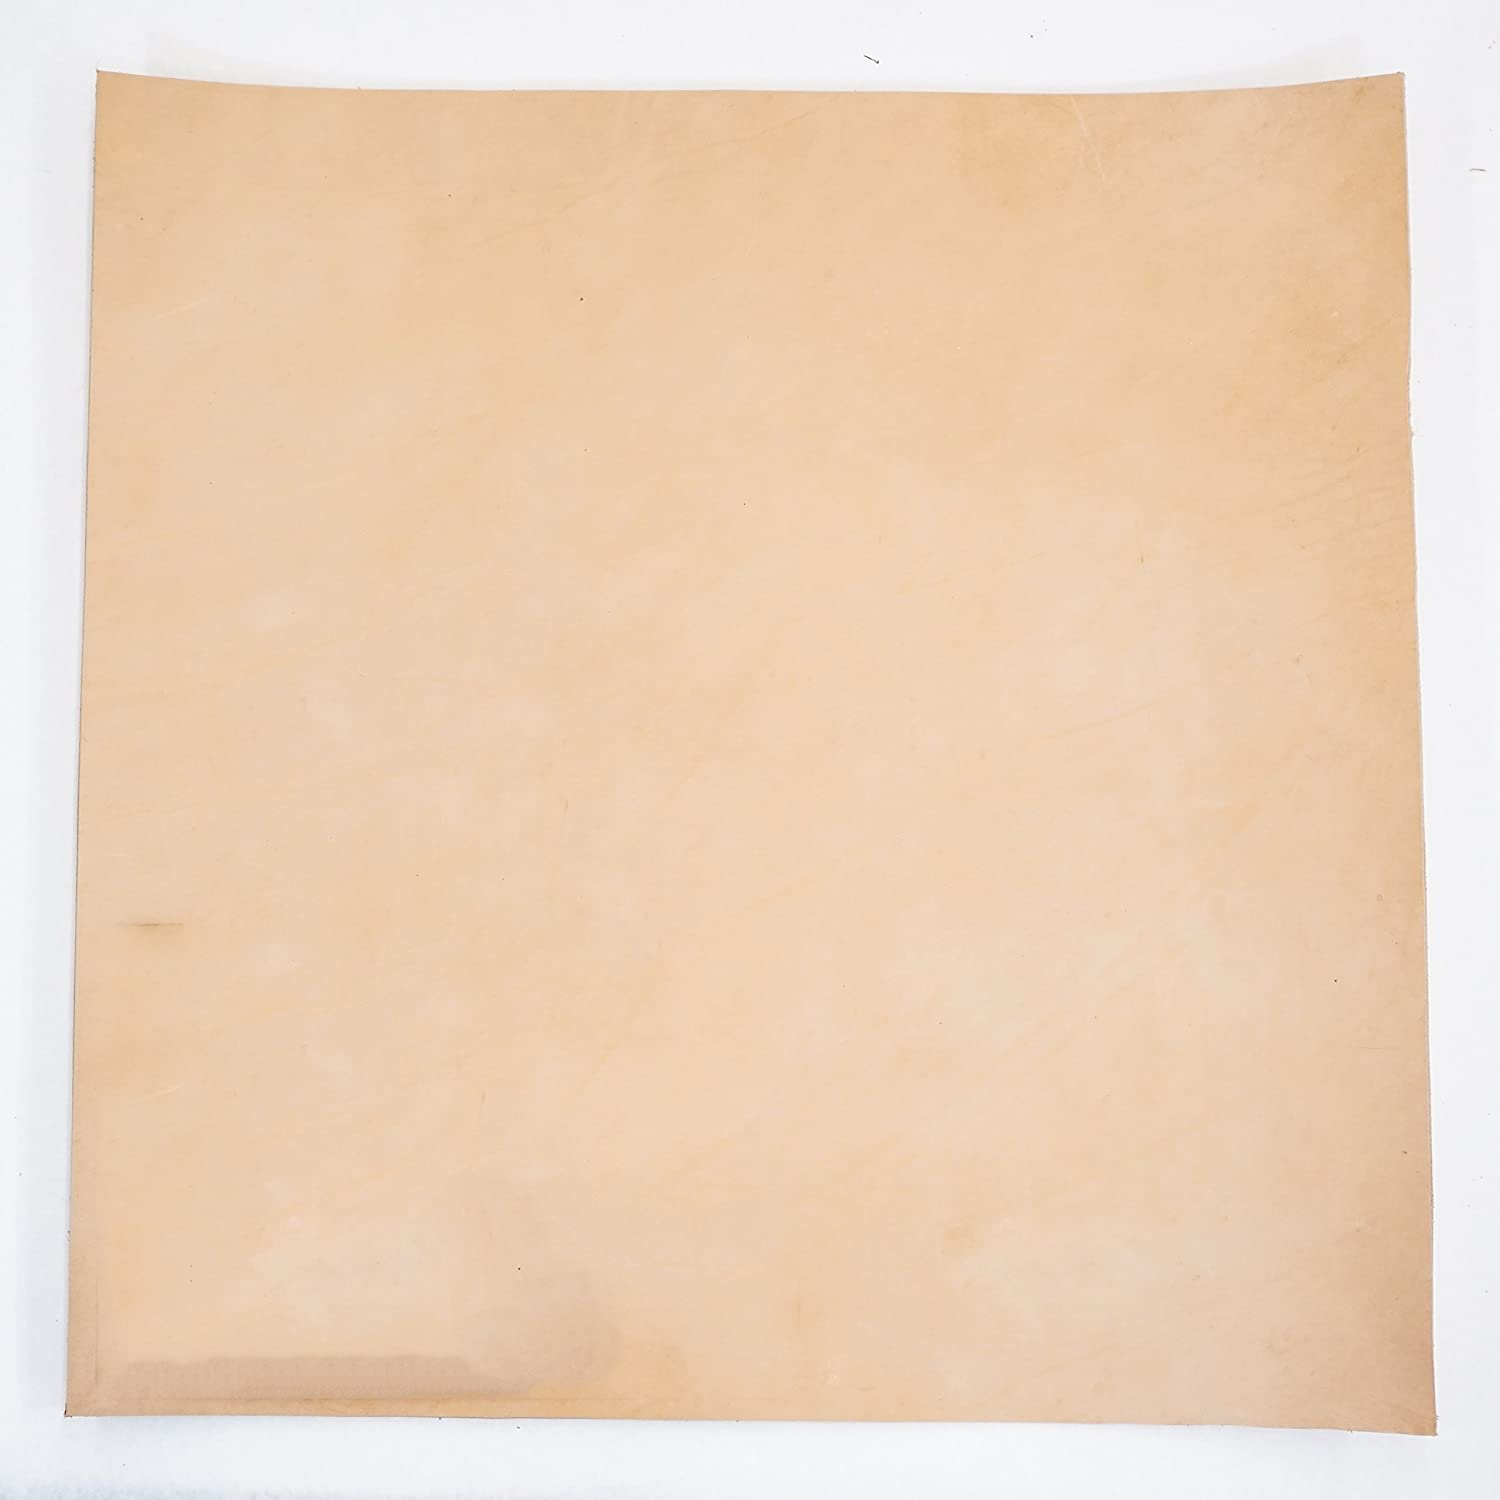 Import Vegetable Tan Cowhide Tooling Leather 5-6oz Pre-Cut 24x24